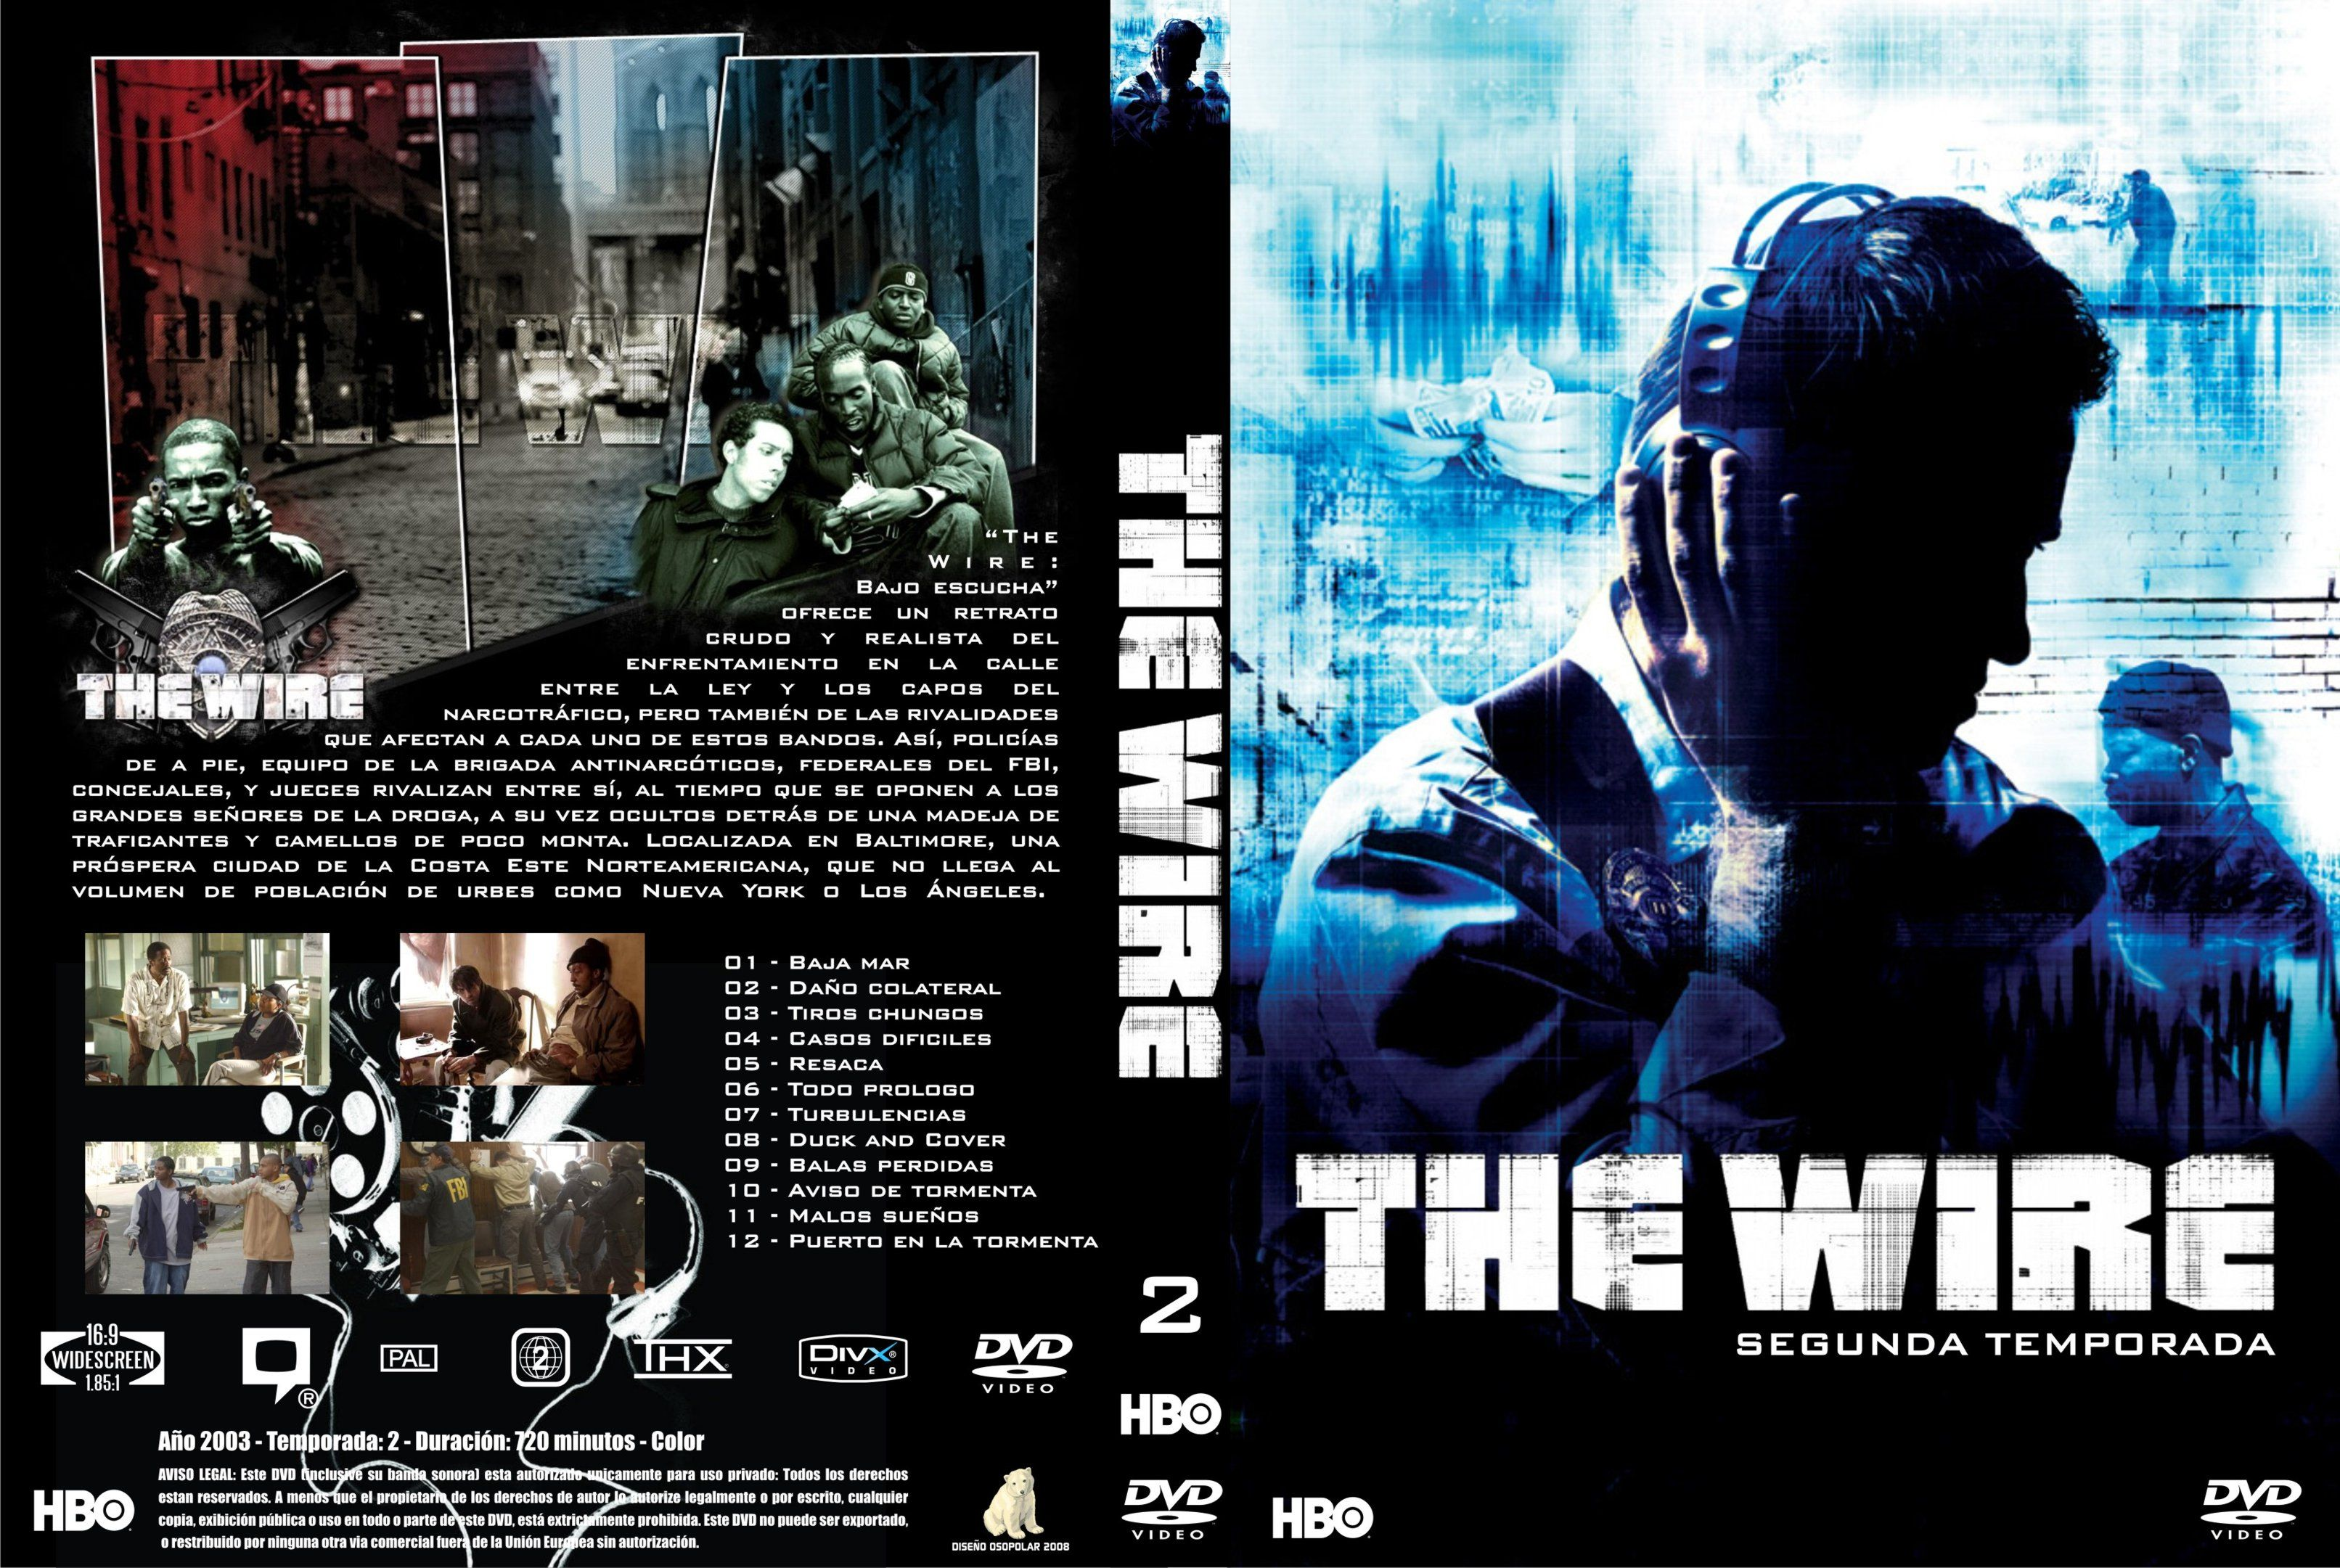 The Wire Season 5 Episode 1 | The Wire Season 5 Episode 3 Imdb Assistir Serie Constantine Dublado